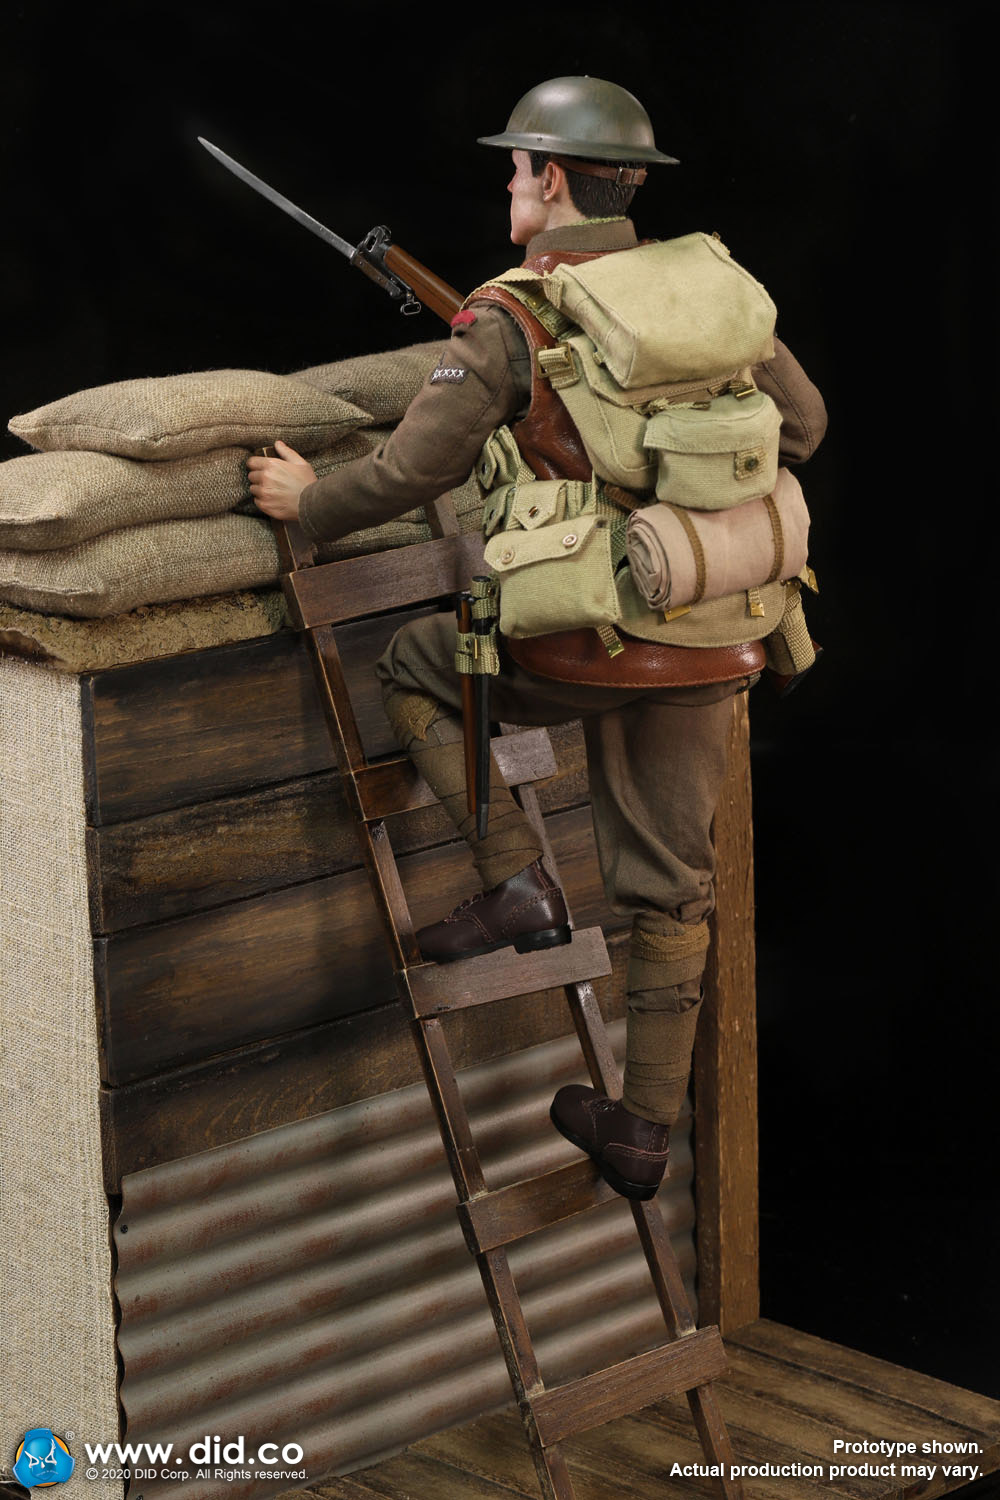 military - NEW PRODUCT: DiD: B11011 WWI British Infantry Lance Corporal William & Trench Diorama Set (UPDATED INFORMATION) 4398